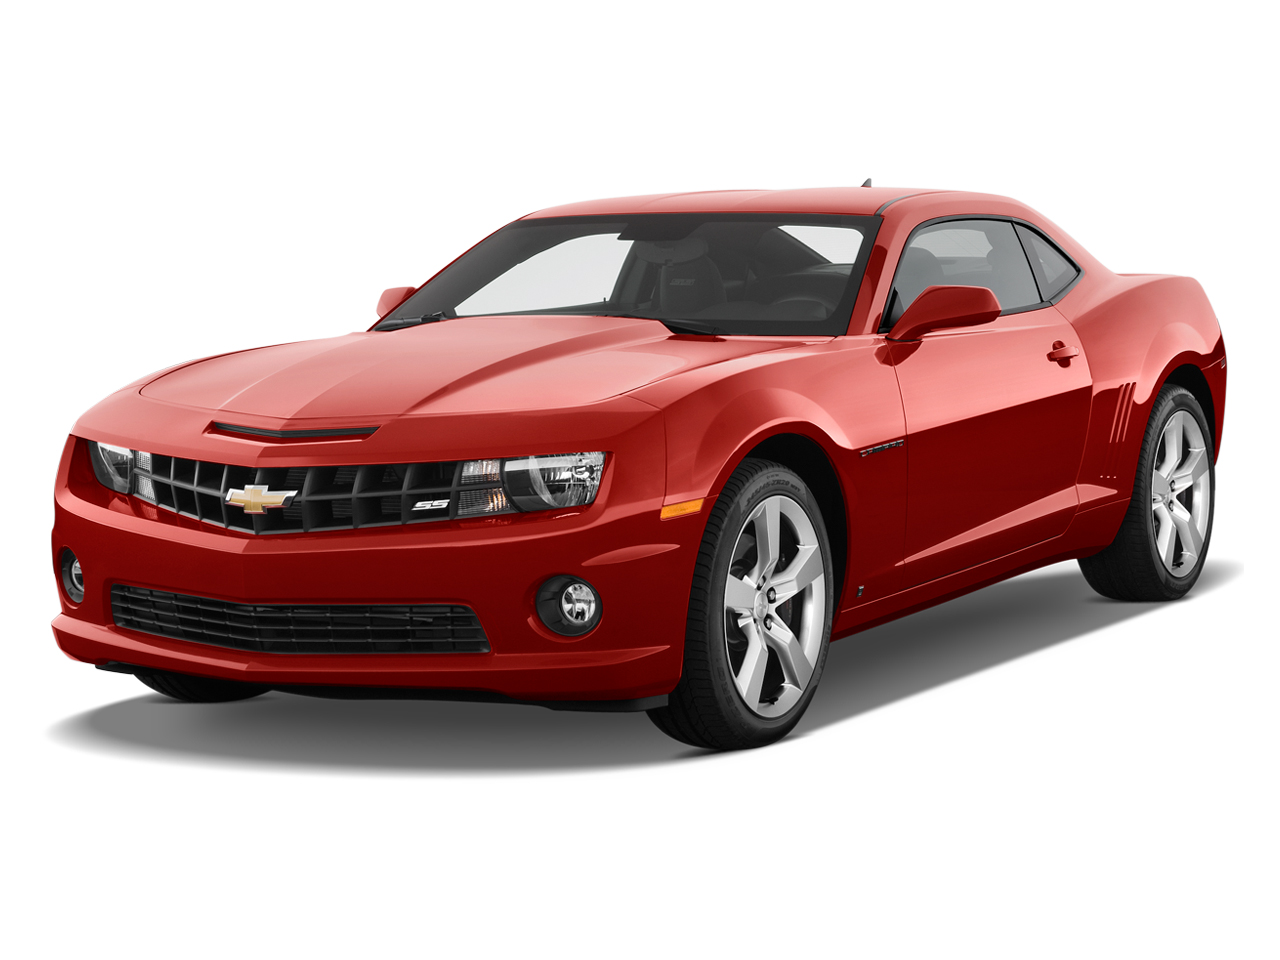 chevrolet camaro coupe 2ss-pic. 1